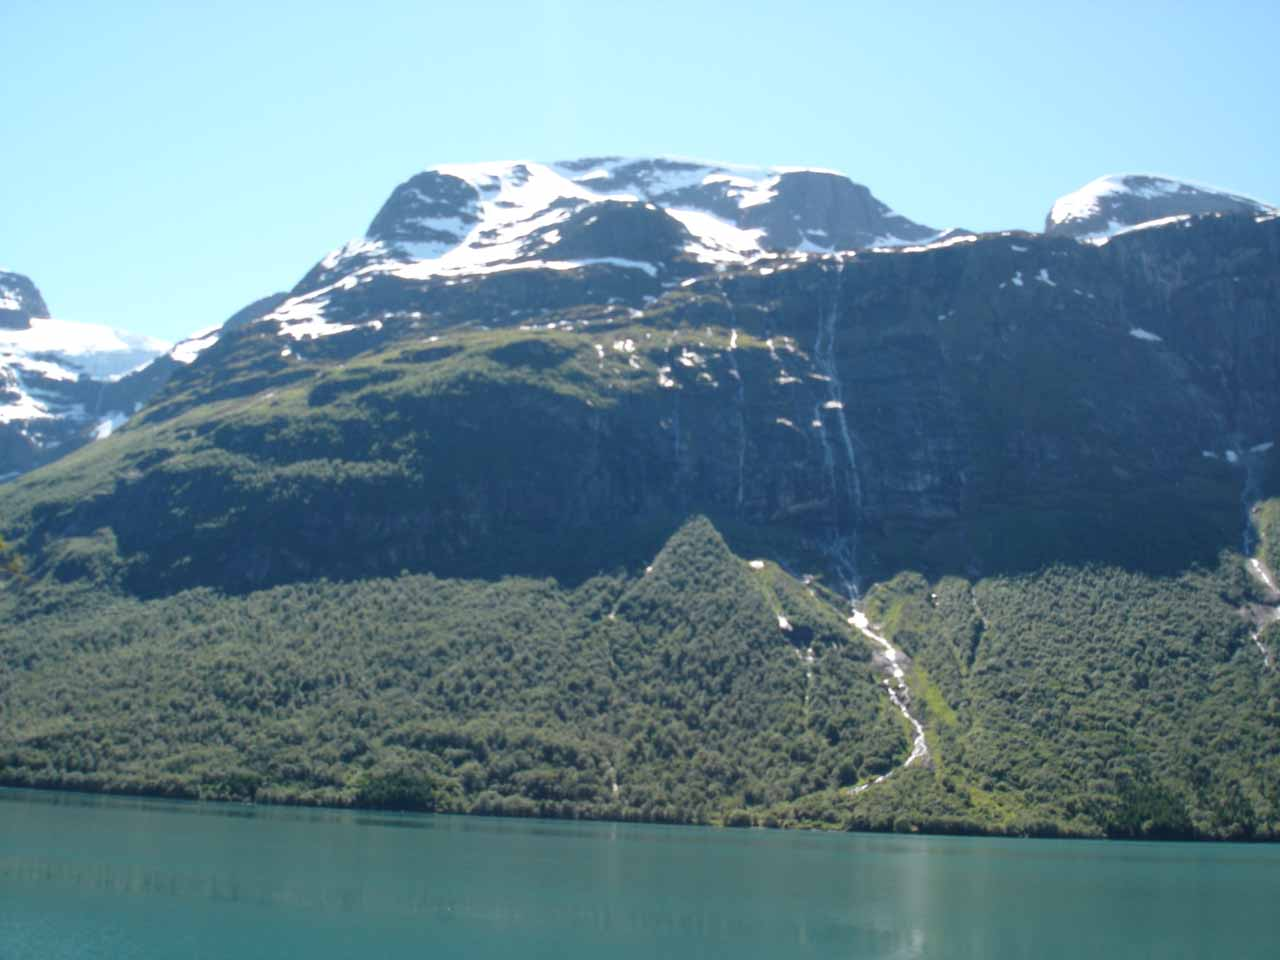 Looking across the lake Lovatnet towards other tall and stringy waterfalls spilling into Lodalen Valley